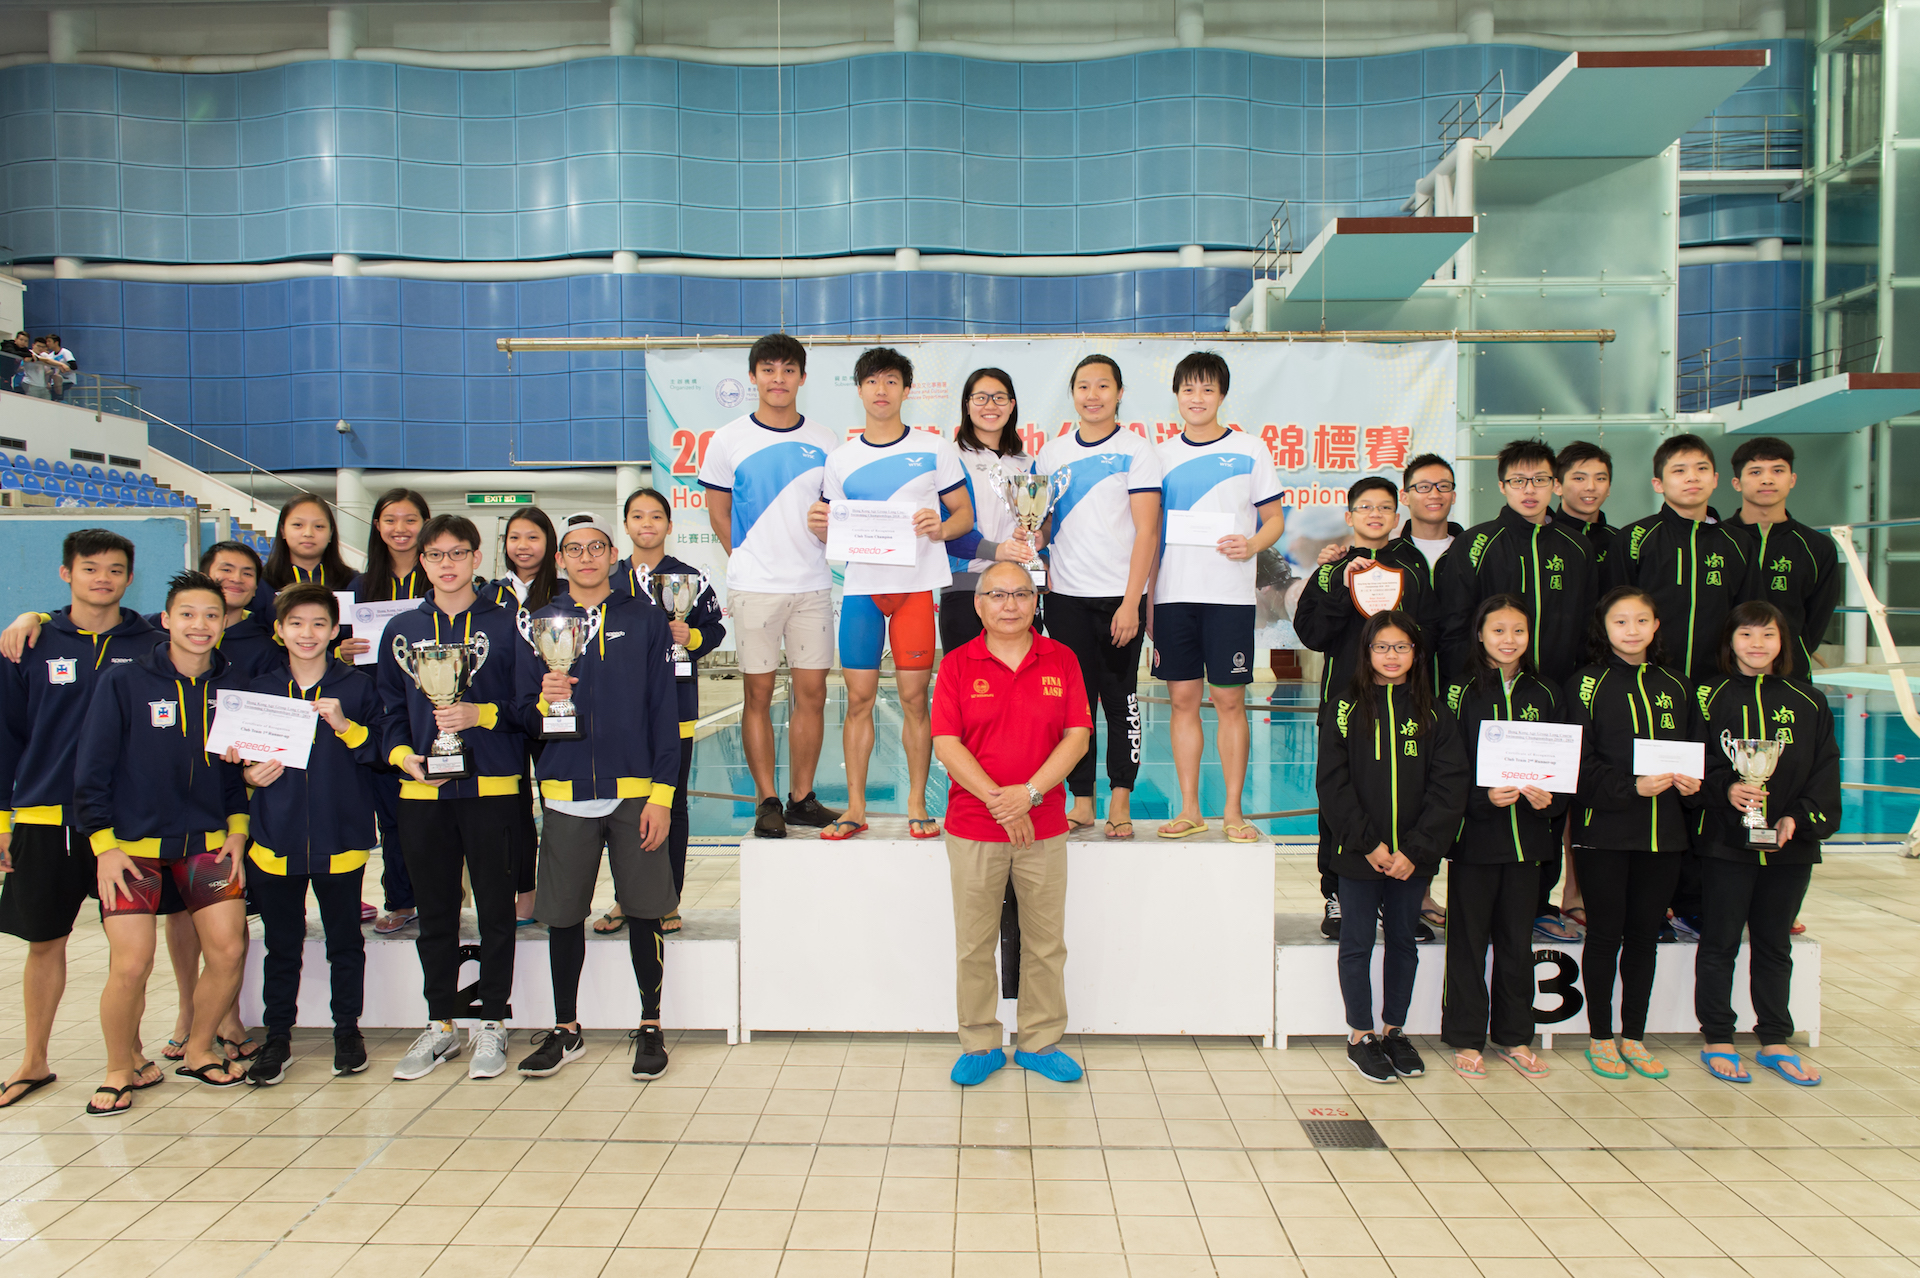 Win Tin Swimming Club - 2018 LCC 2